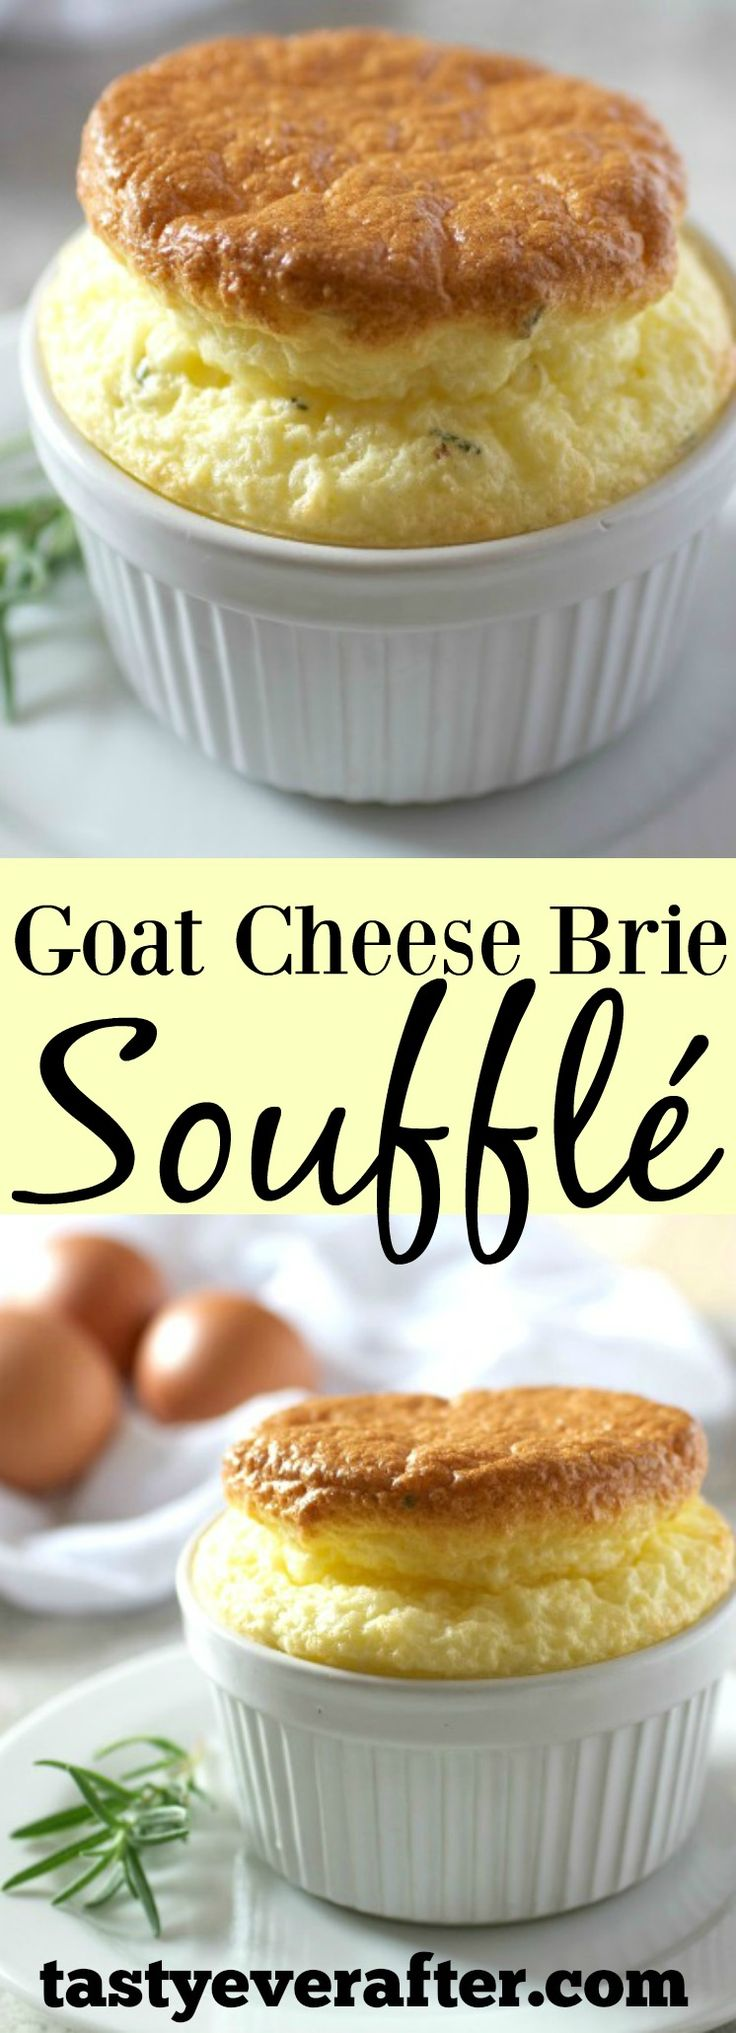 This super easy souffle is perfect for brunch or as a vegetarian main entrée. Batter can even be made a couple of days ahead of time before baking!